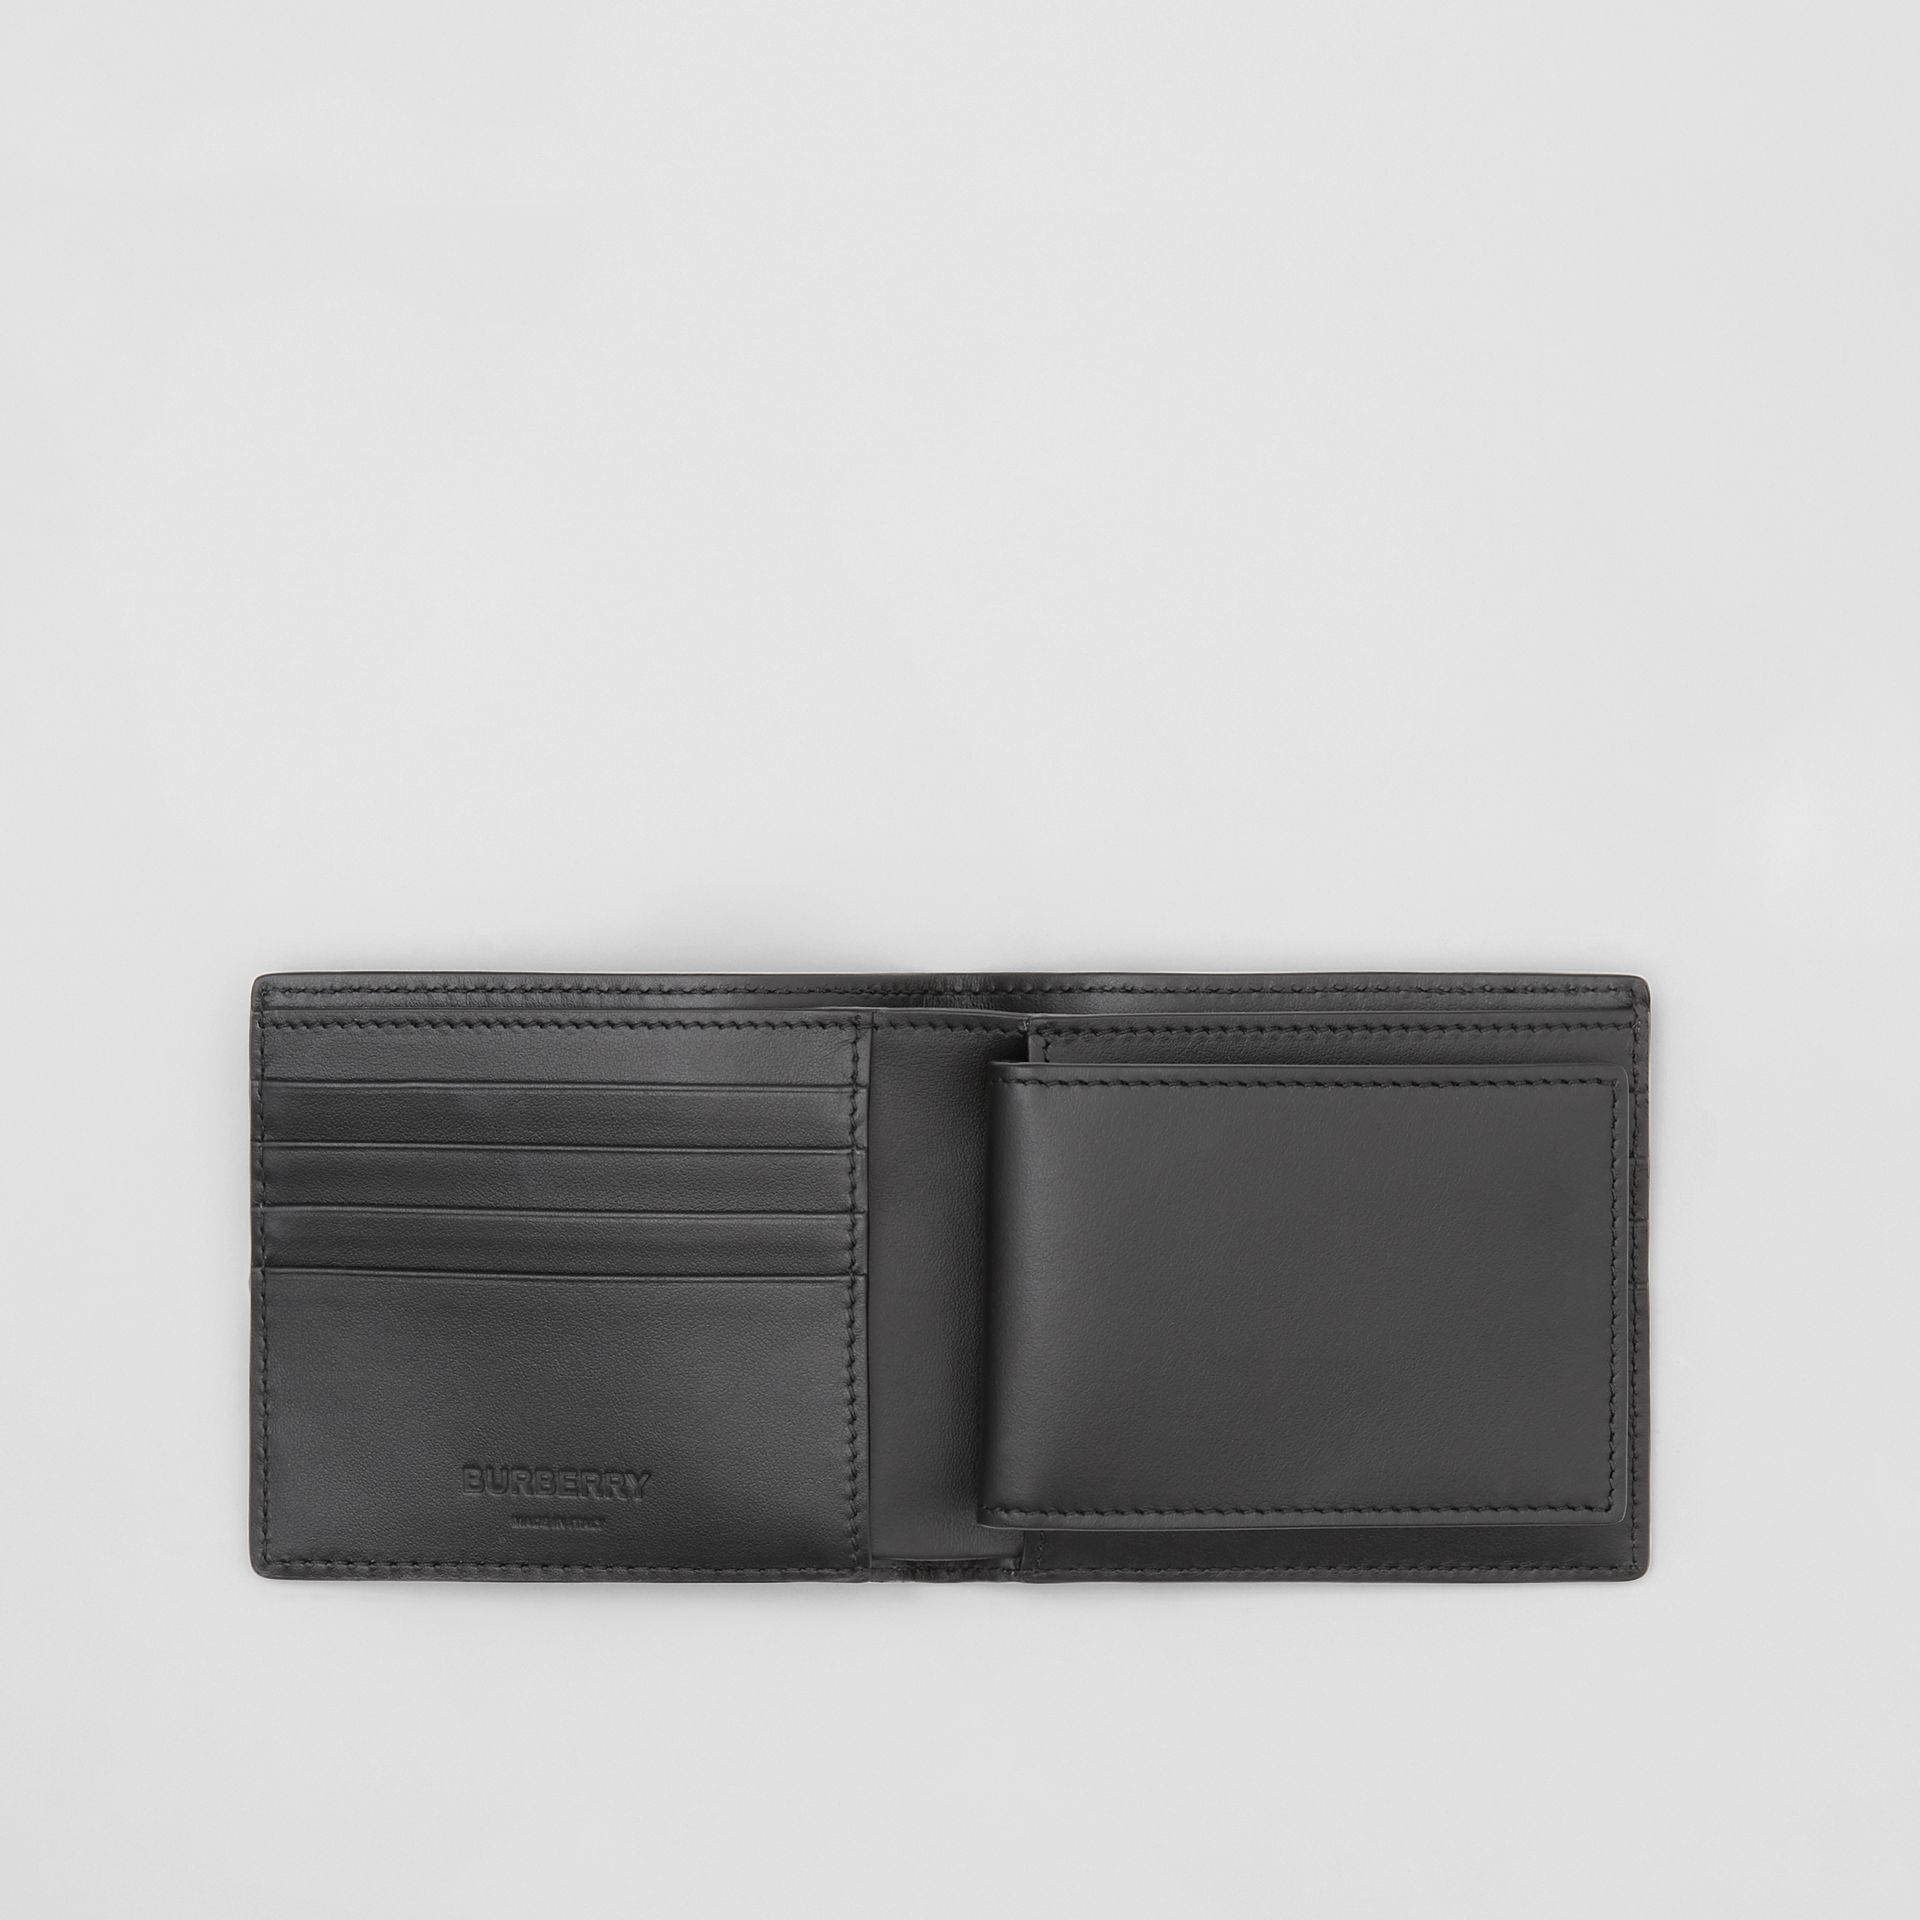 Monogram Leather Bifold Wallet with ID Card Case in Black - Men | Burberry - gallery image 2